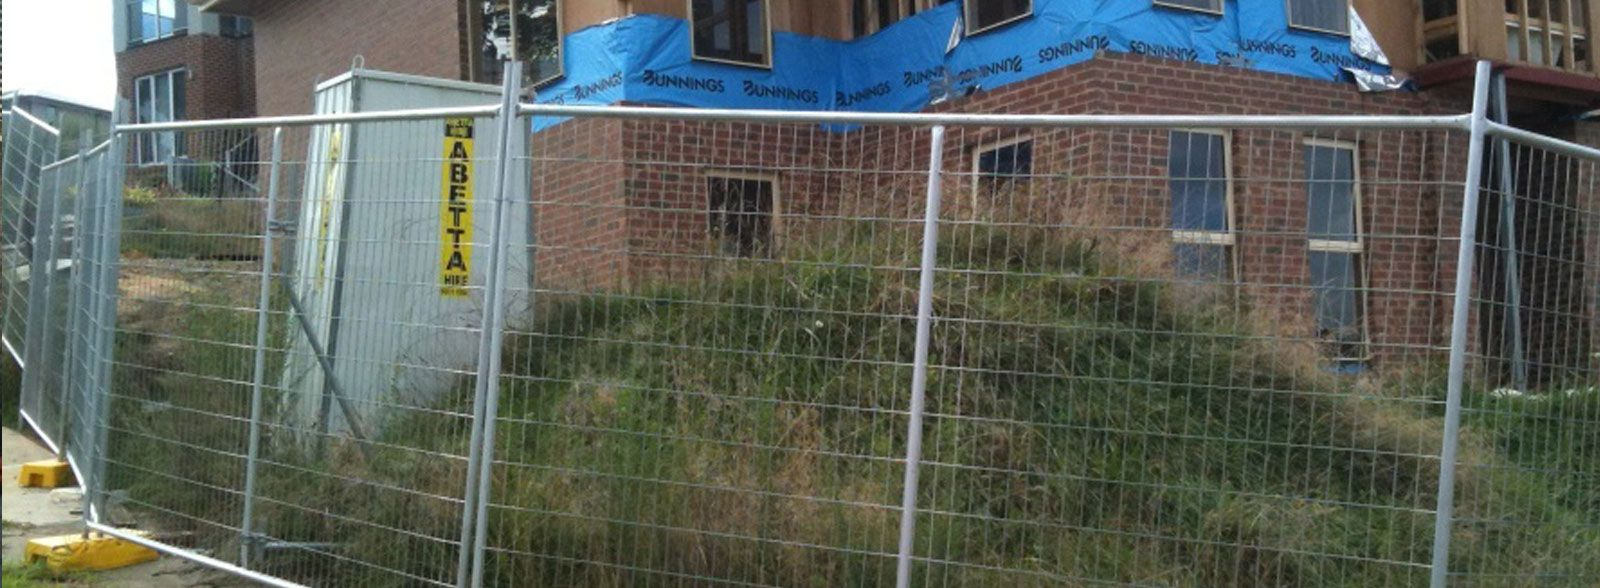 Temporaryfencing Is The Best Option For Construction Fencing